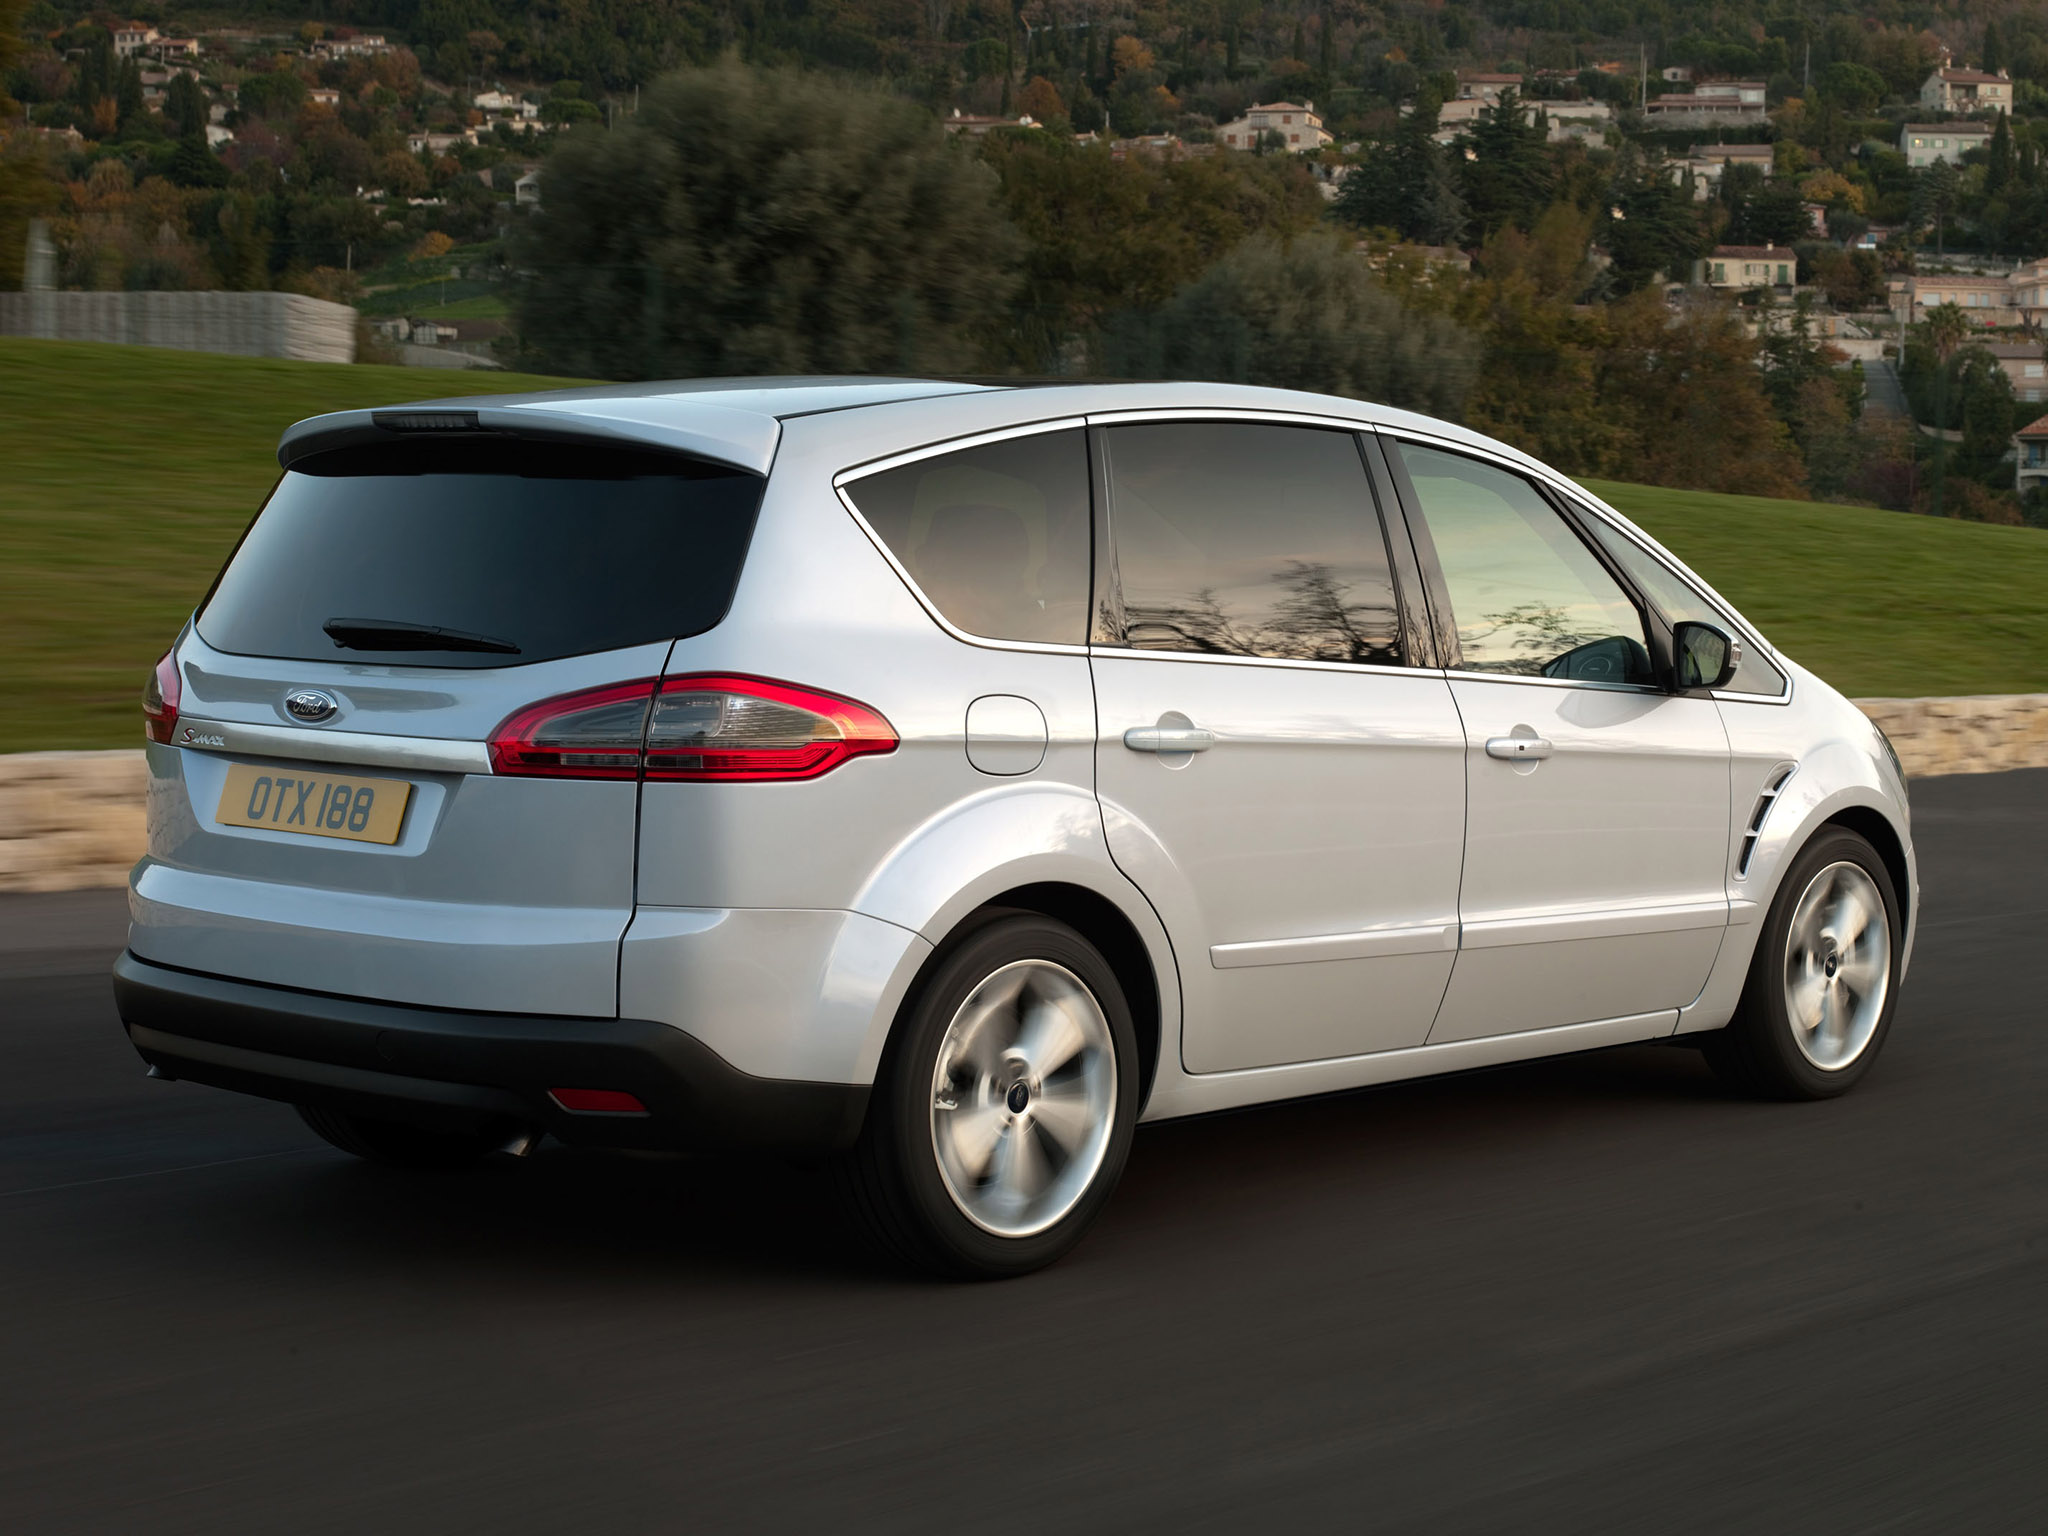 Ford S-Max 2.3 2011 photo - 3